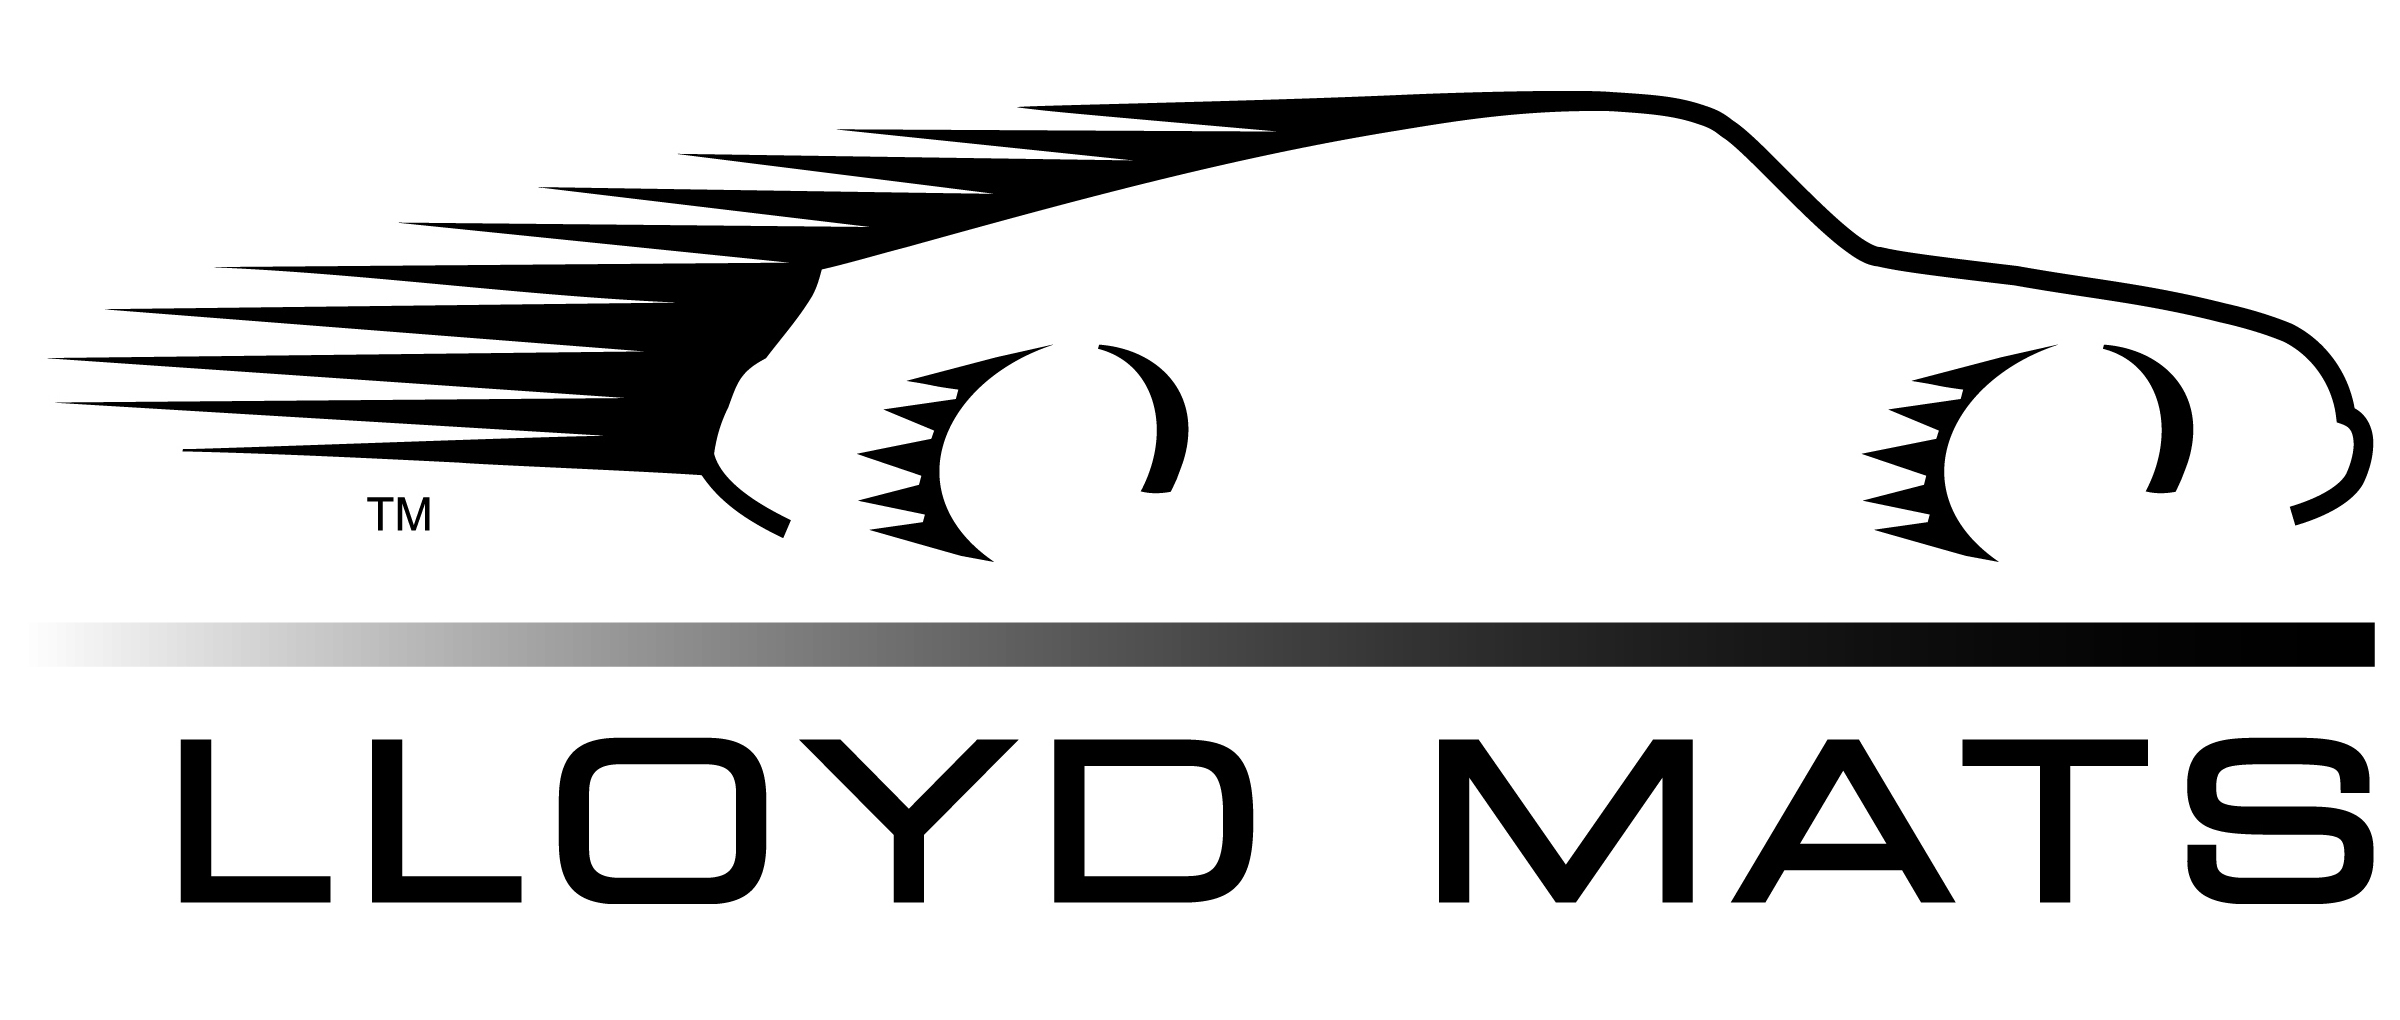 CMTC-Case-Study-Lloyd-Mats-Square-Stacked-Logo_-_cropped